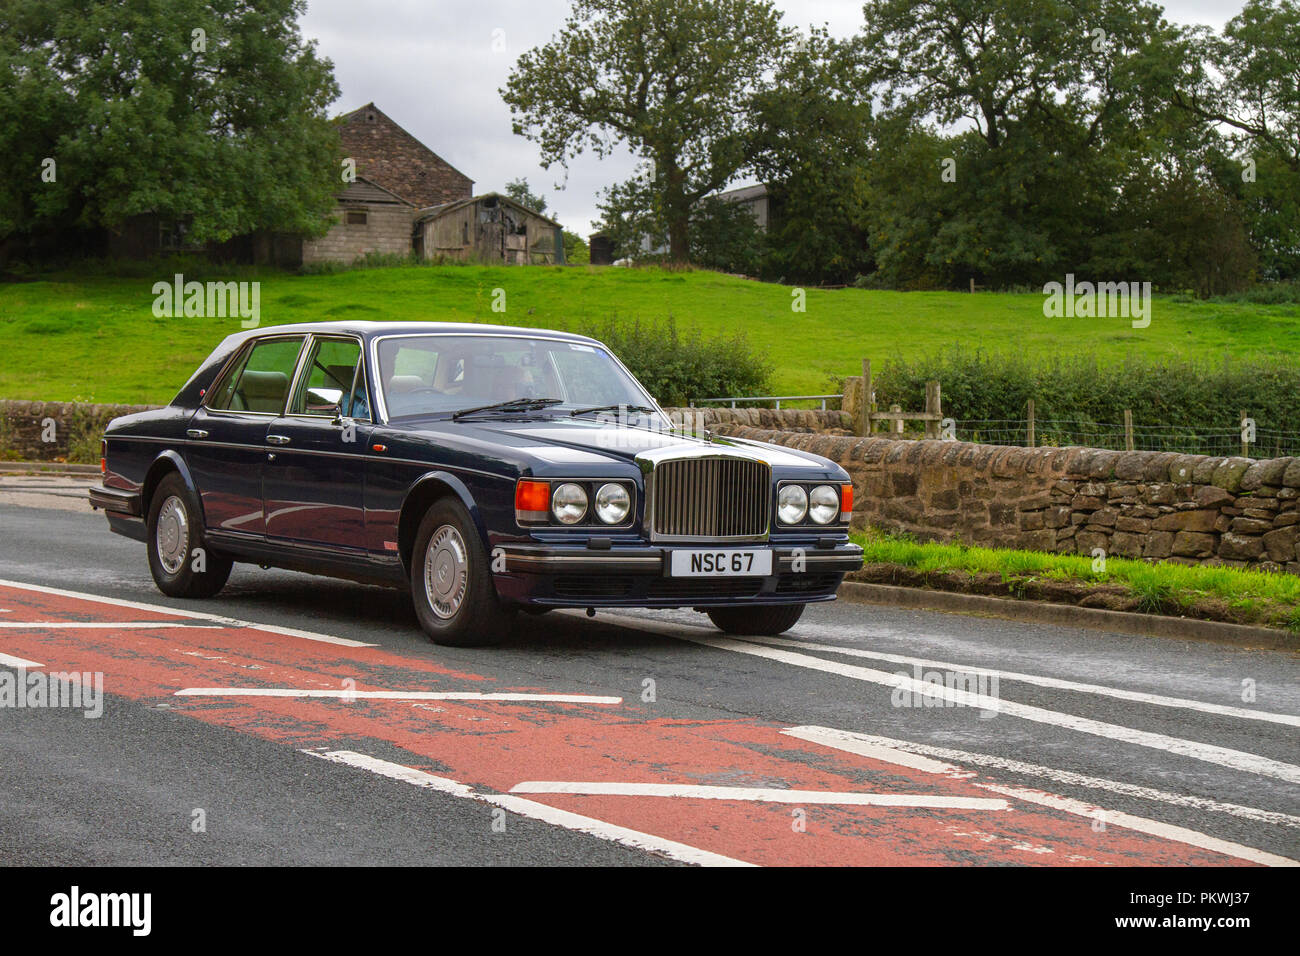 1990 Bentley Bentley Others Classic, vintage, veteran, cars of yesteryear, restored collectibles at Hoghton Tower Class Cars Rally, UK - Stock Image